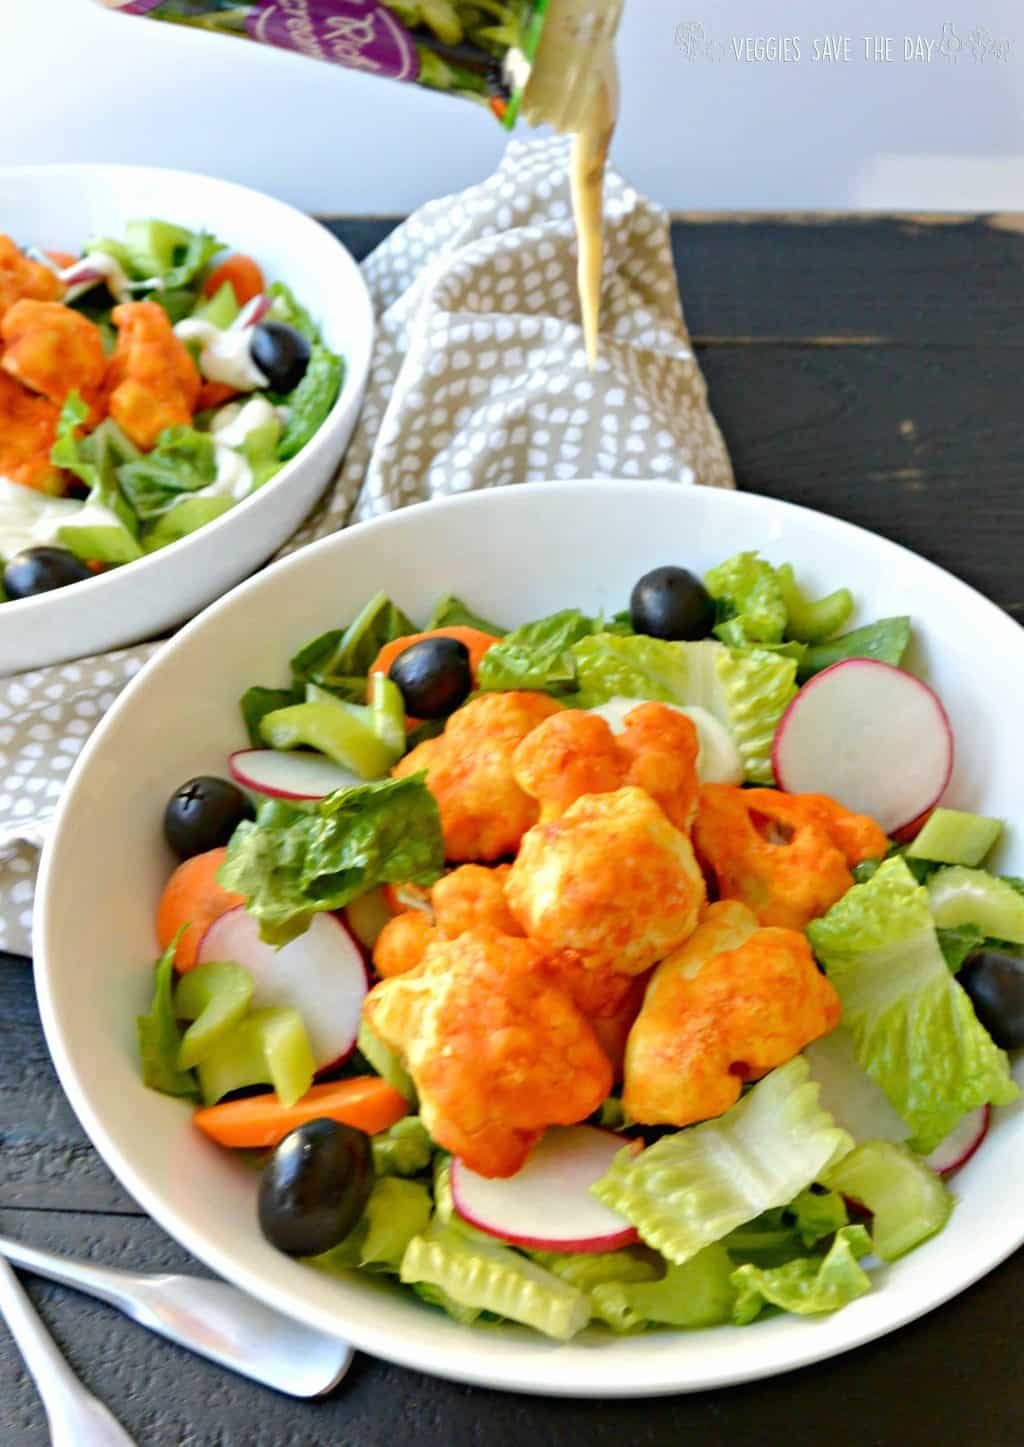 Pouring vegan ranch dressing over Buffalo Cauliflower Bites Salad